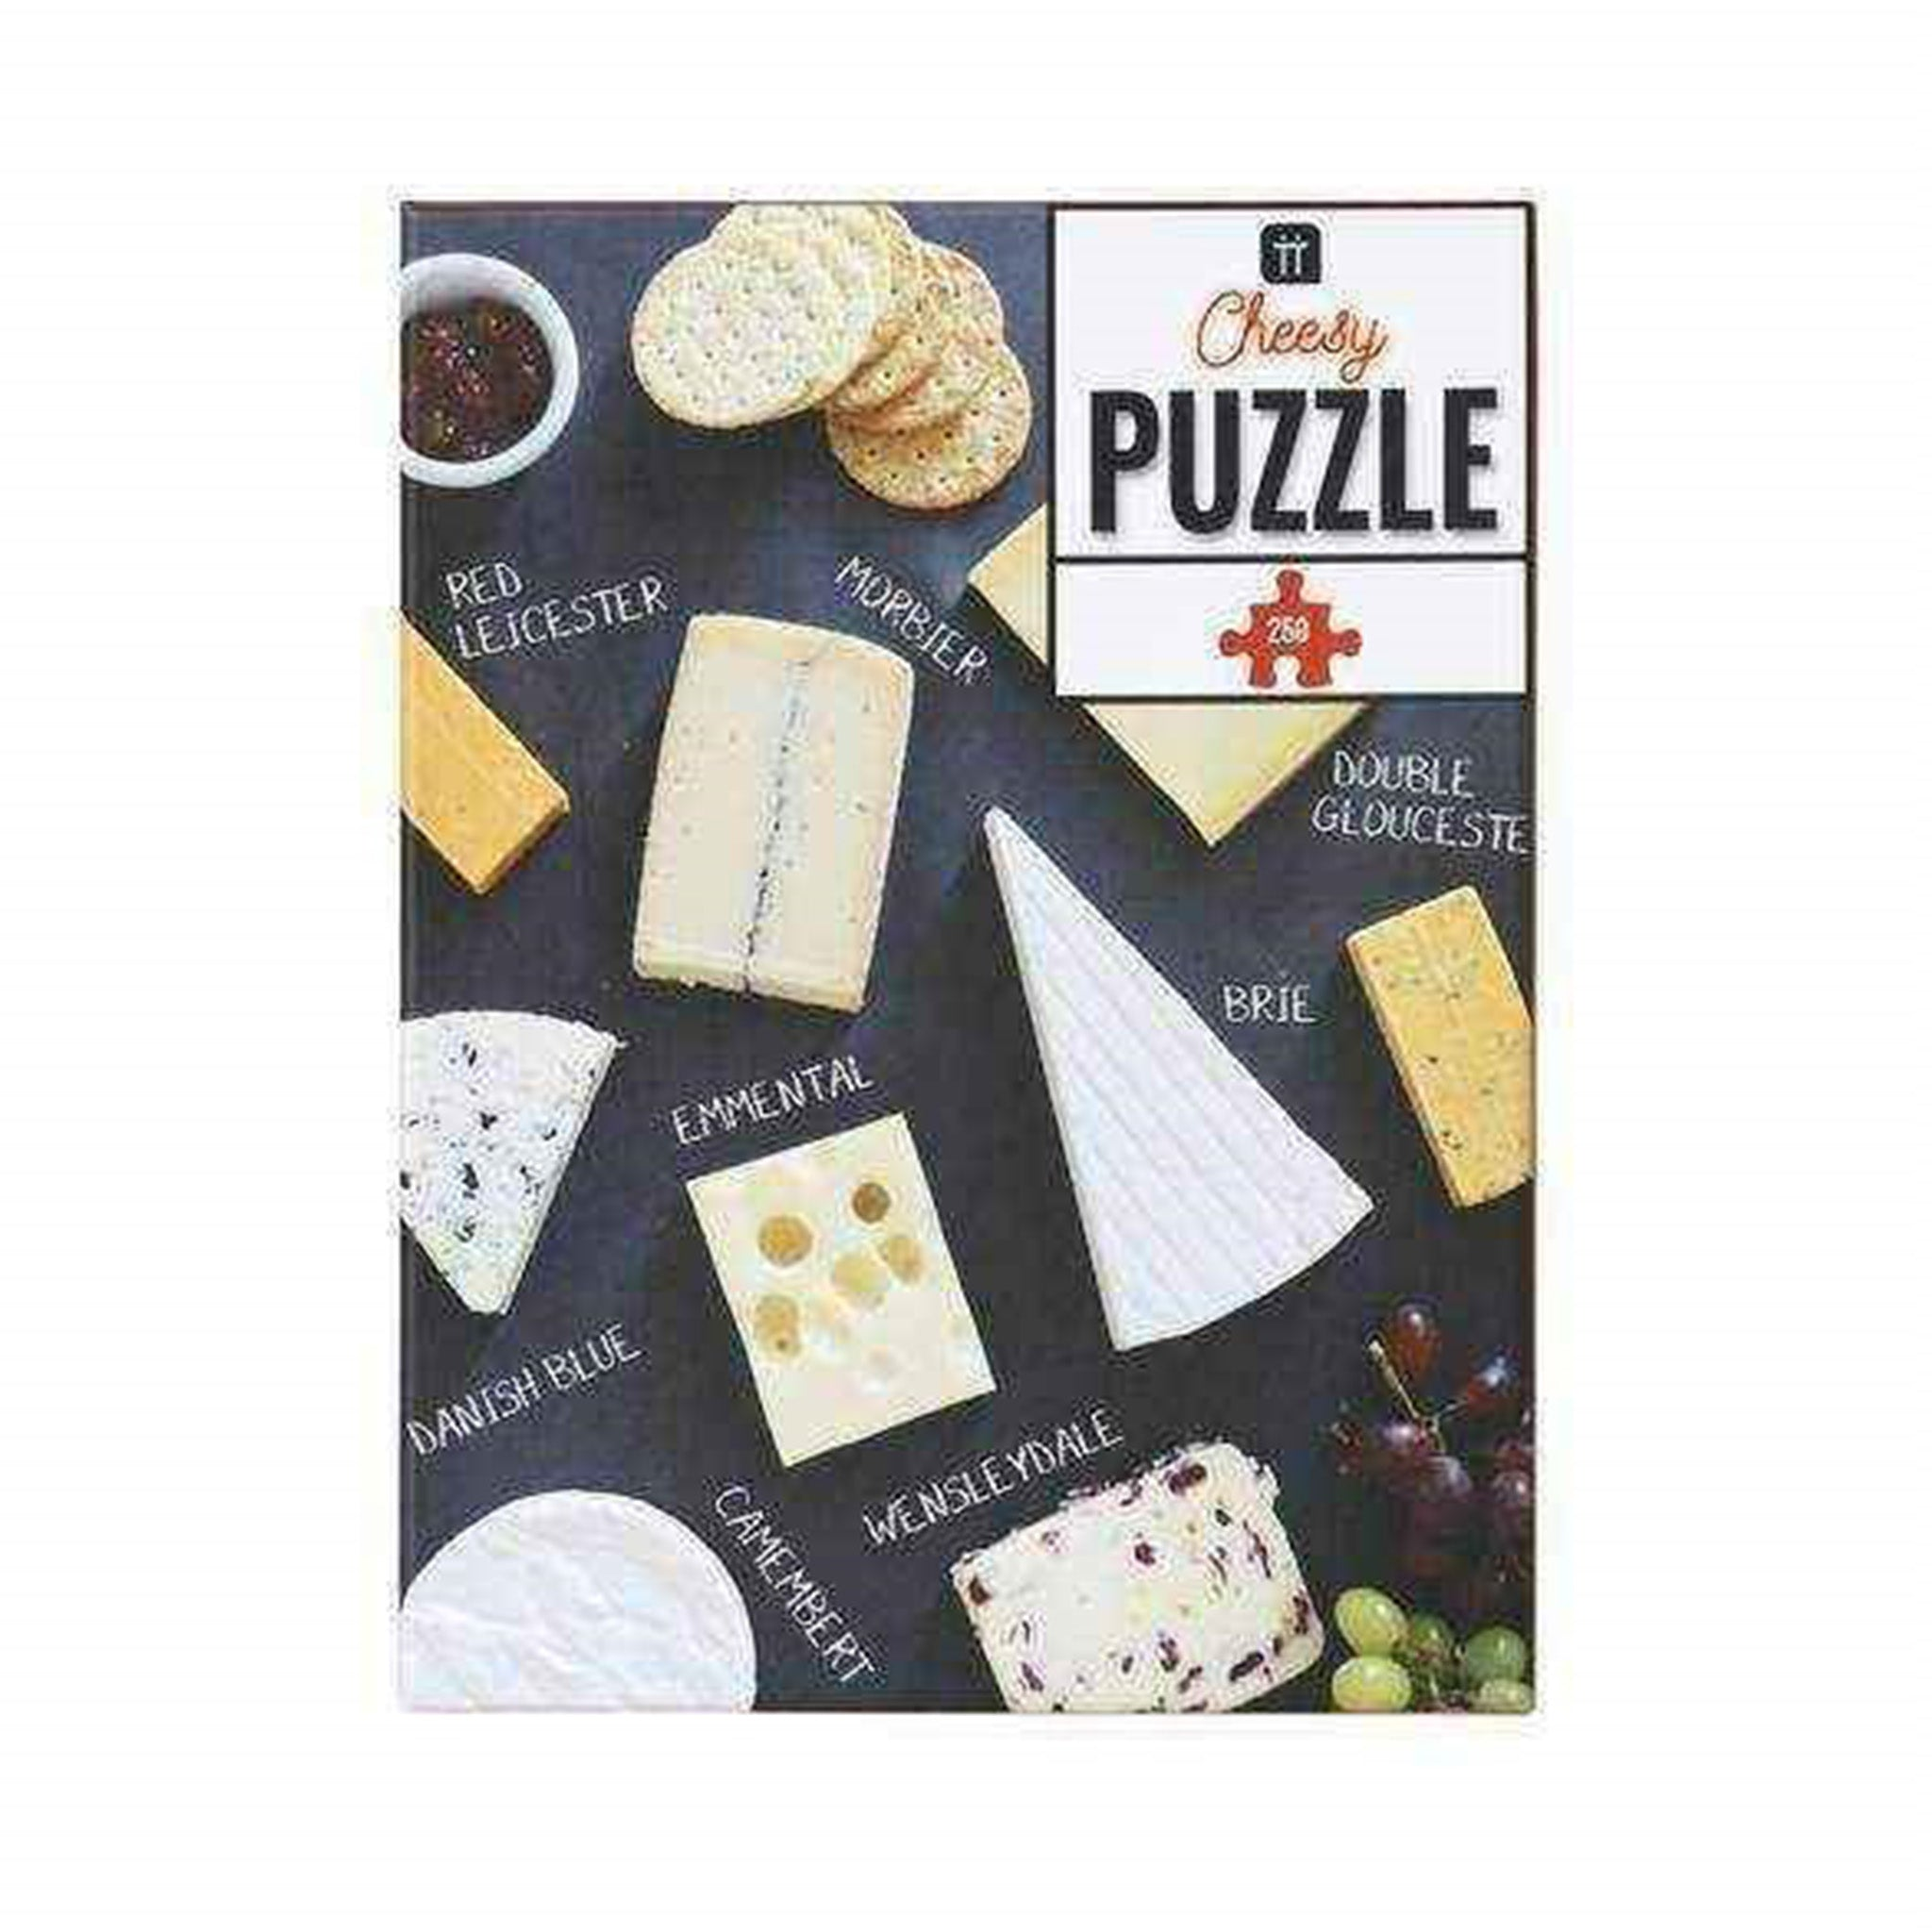 500Piece Talking Tables Jigsaw Puzzles for Adults Party Games Yoga